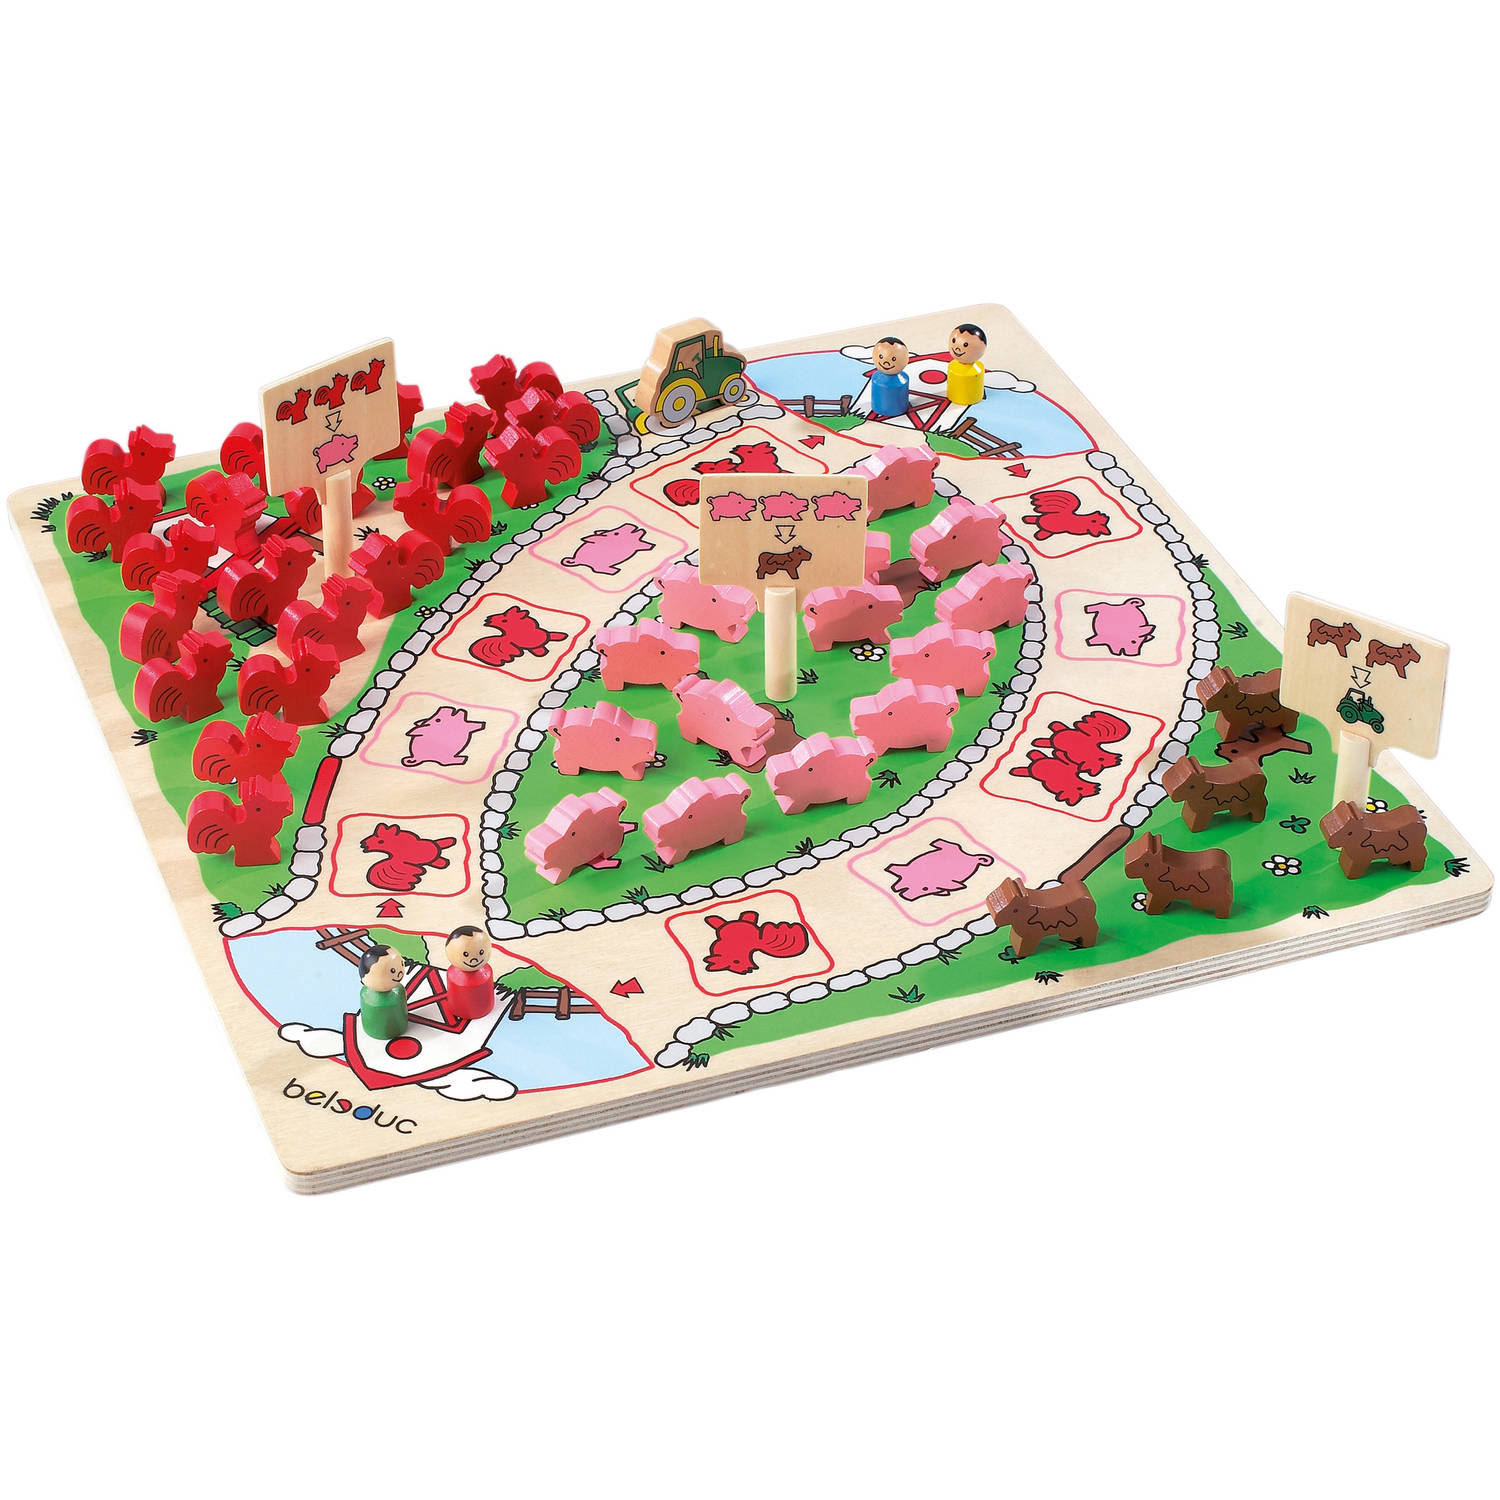 BELEDUC Happy Farm In Color Box by Beleduc